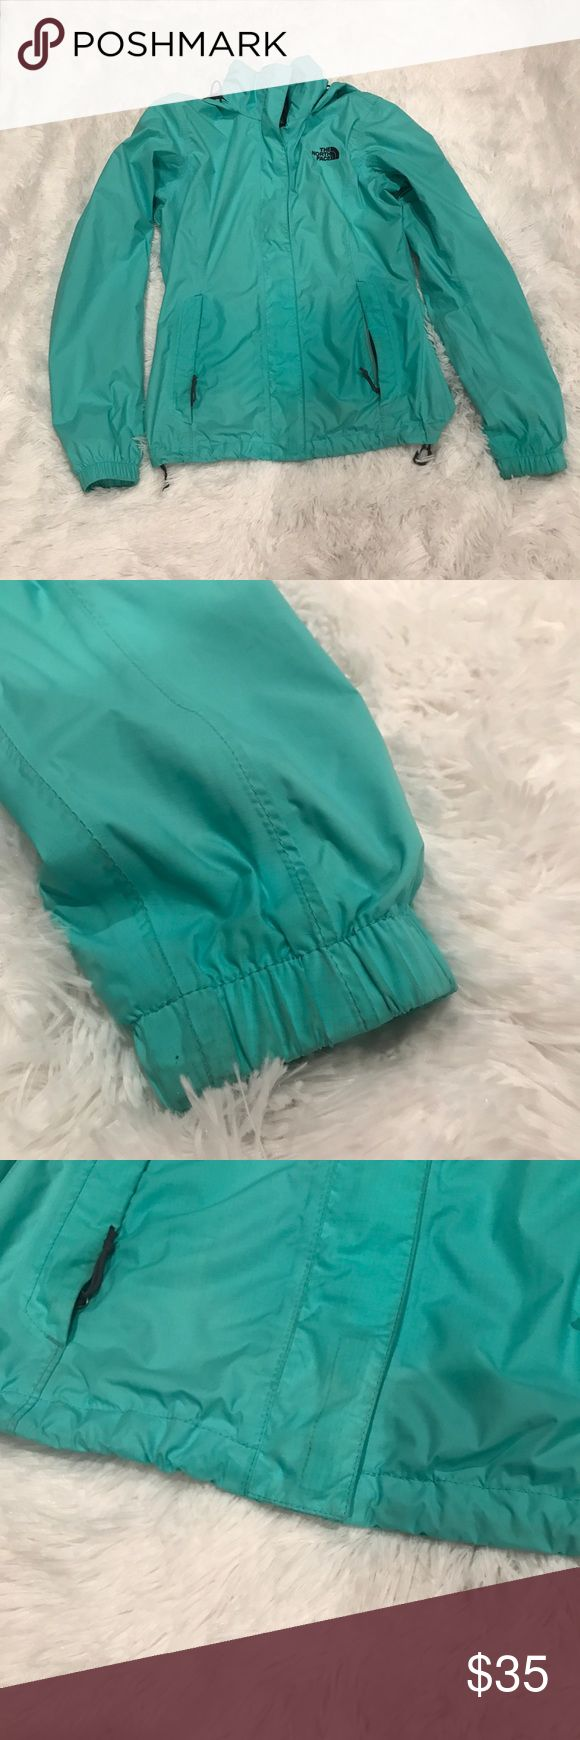 North Face Women's rain jacket North face resolve teal rain jacket lightly worn but still in great condition North Face Jackets & Coats